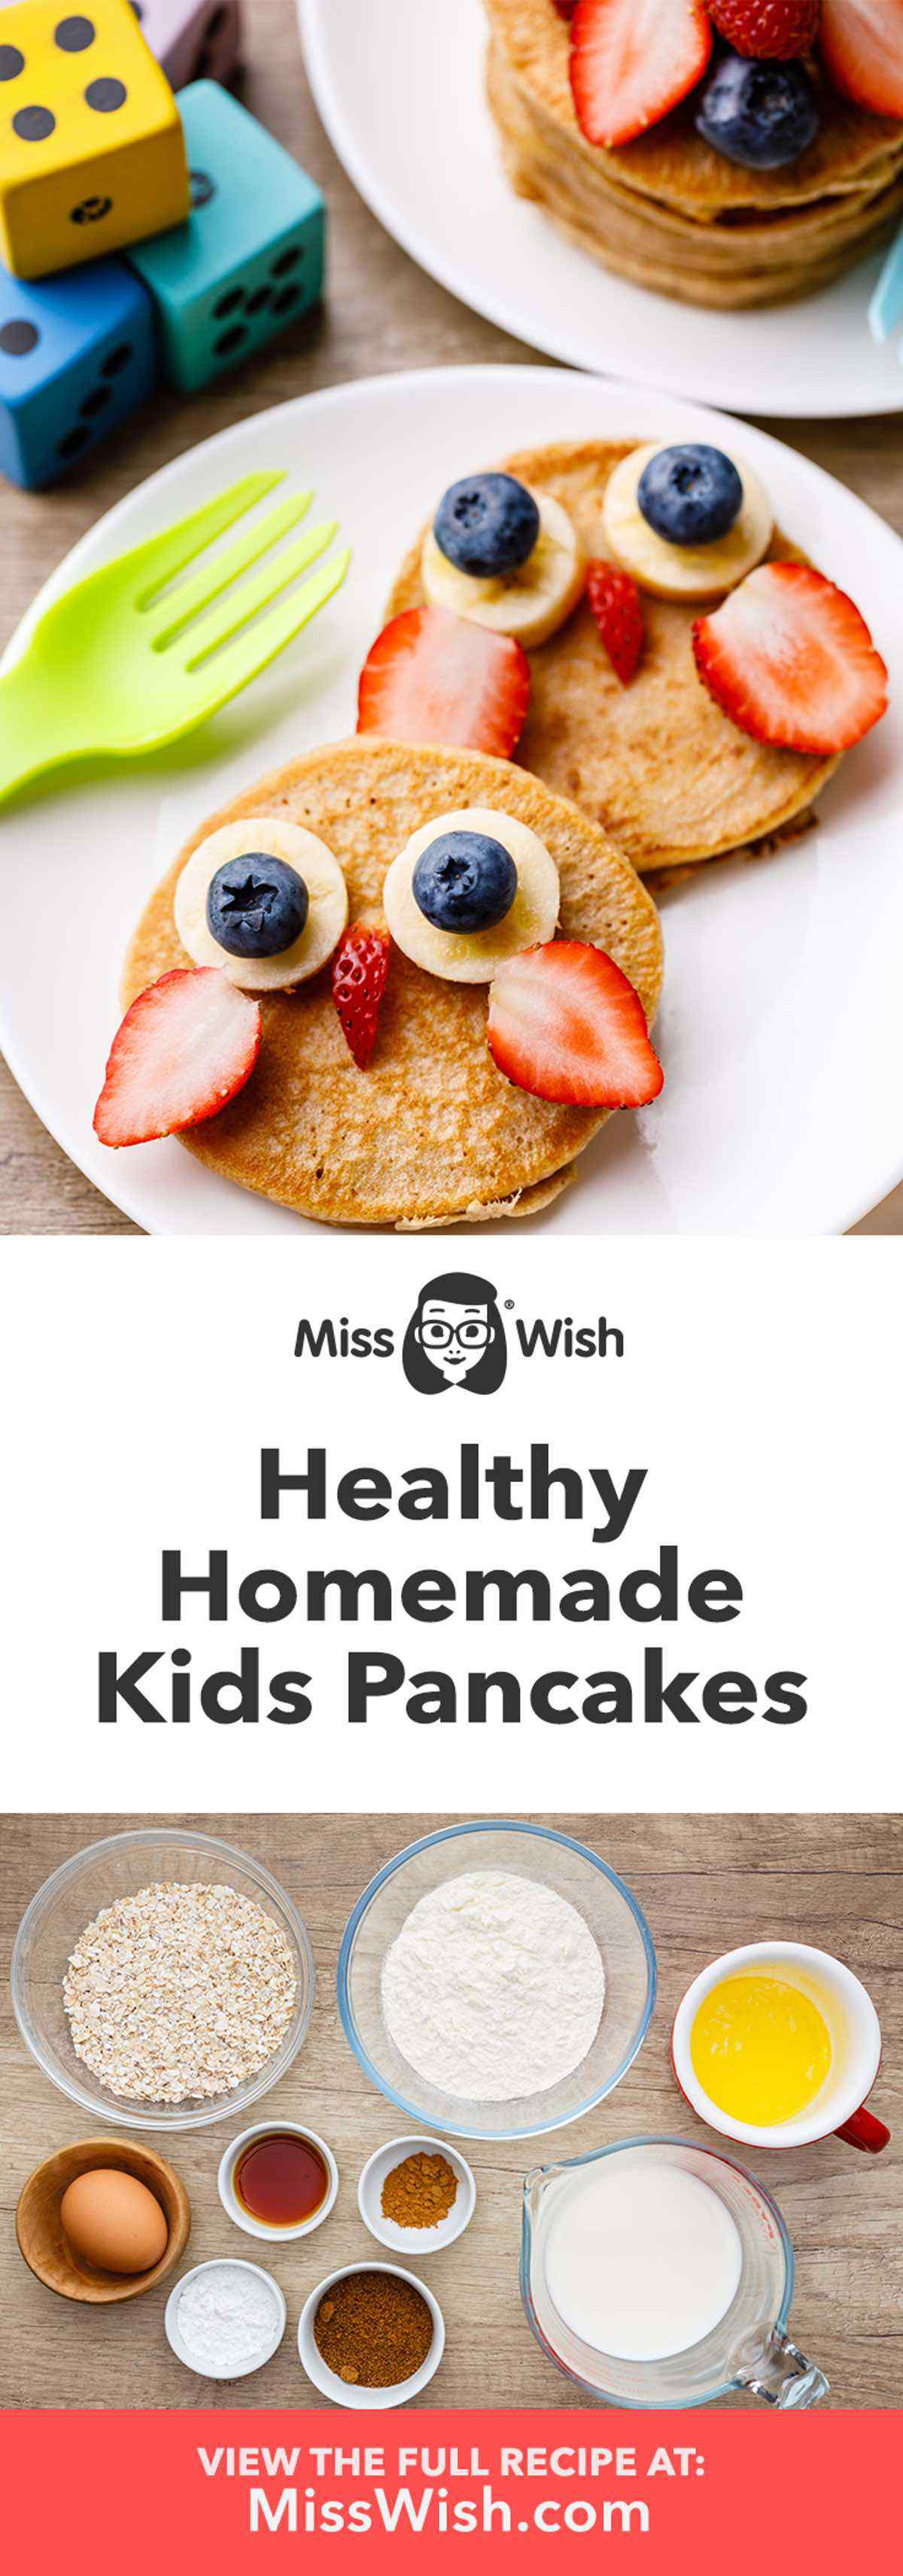 Healthy Protein Pancakes for Kids